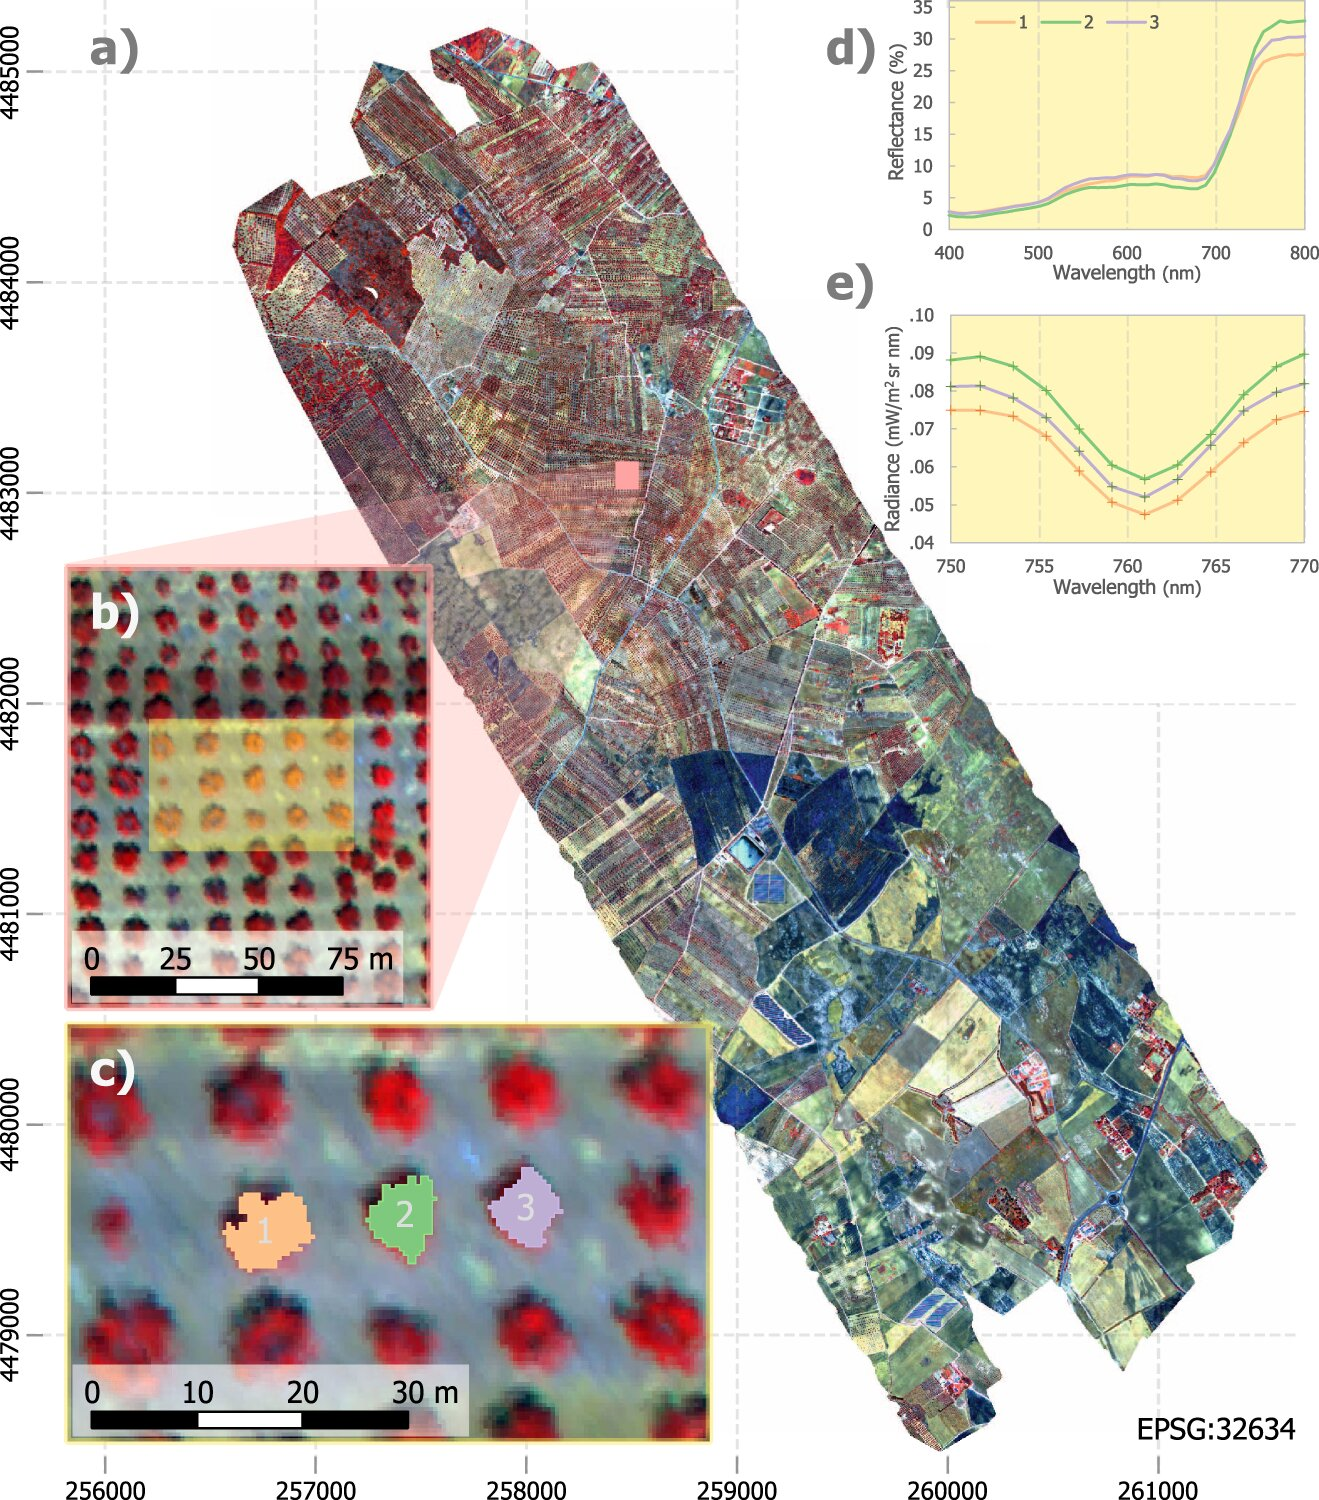 phys.org - Science X staff - Aerial scanning can help protect food crops against devastating disease